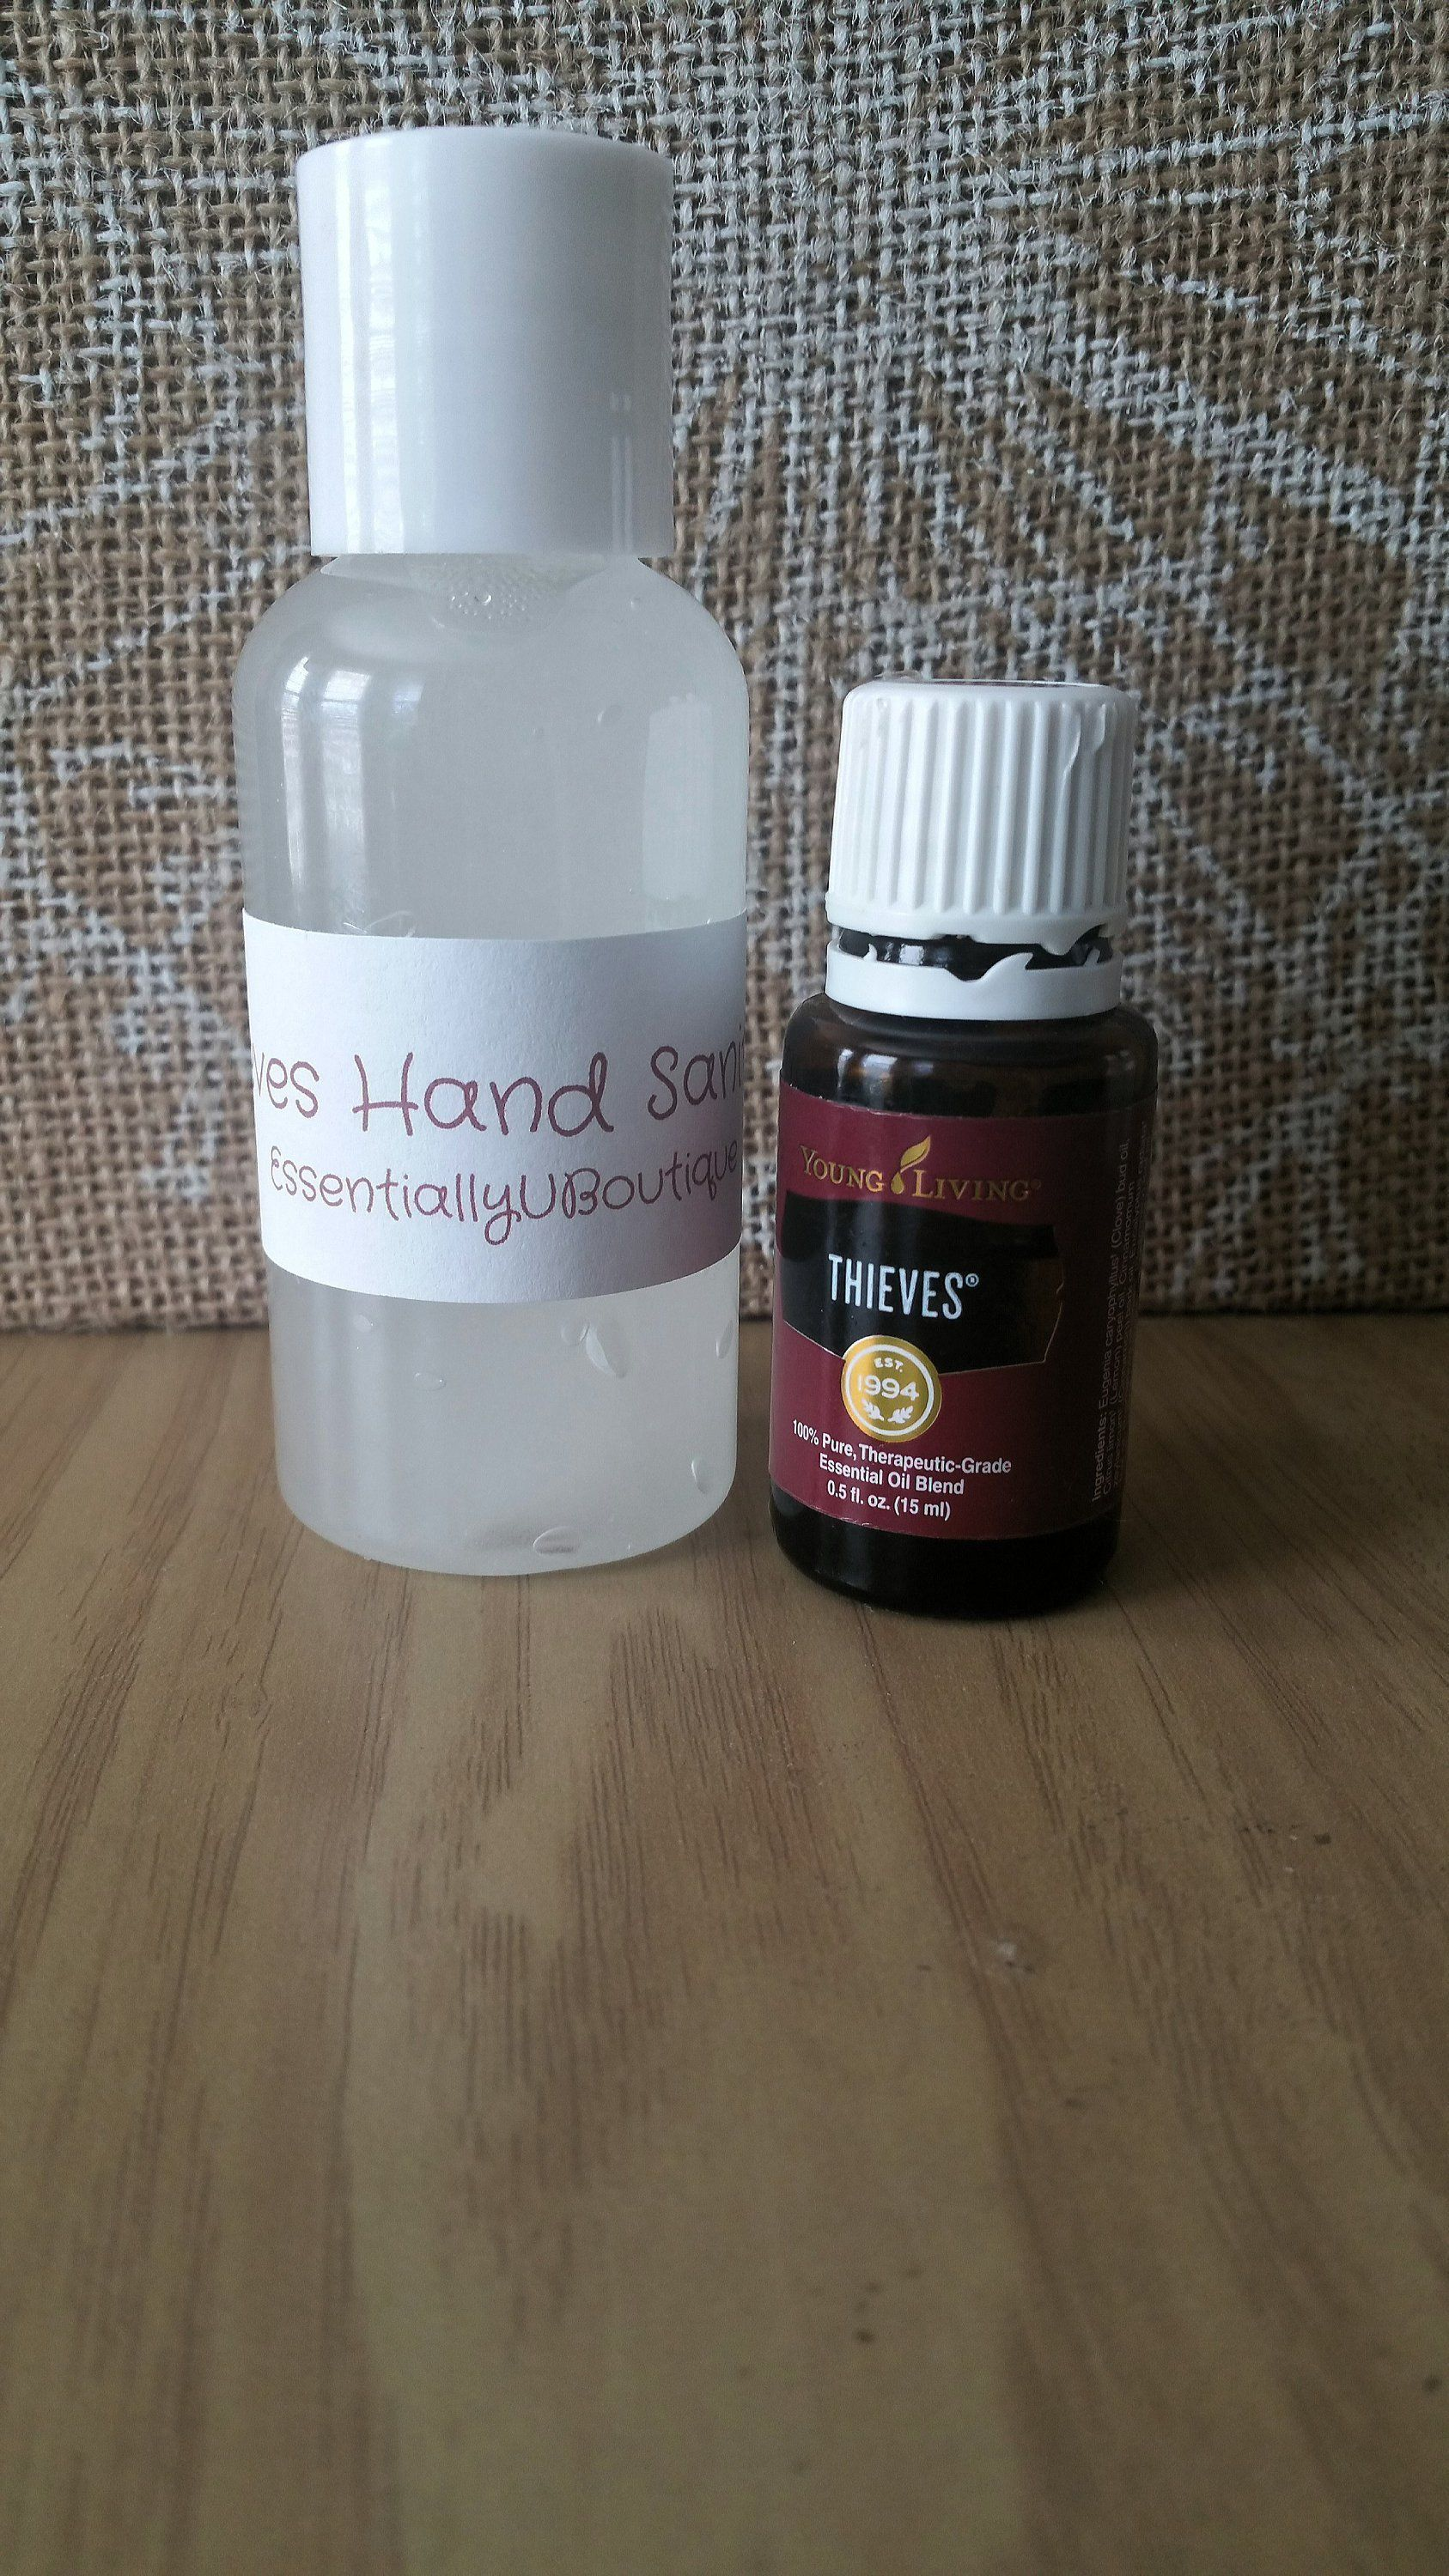 Moisturizing Hand Sanitizer All Natural Hand Sanitizer Thieves